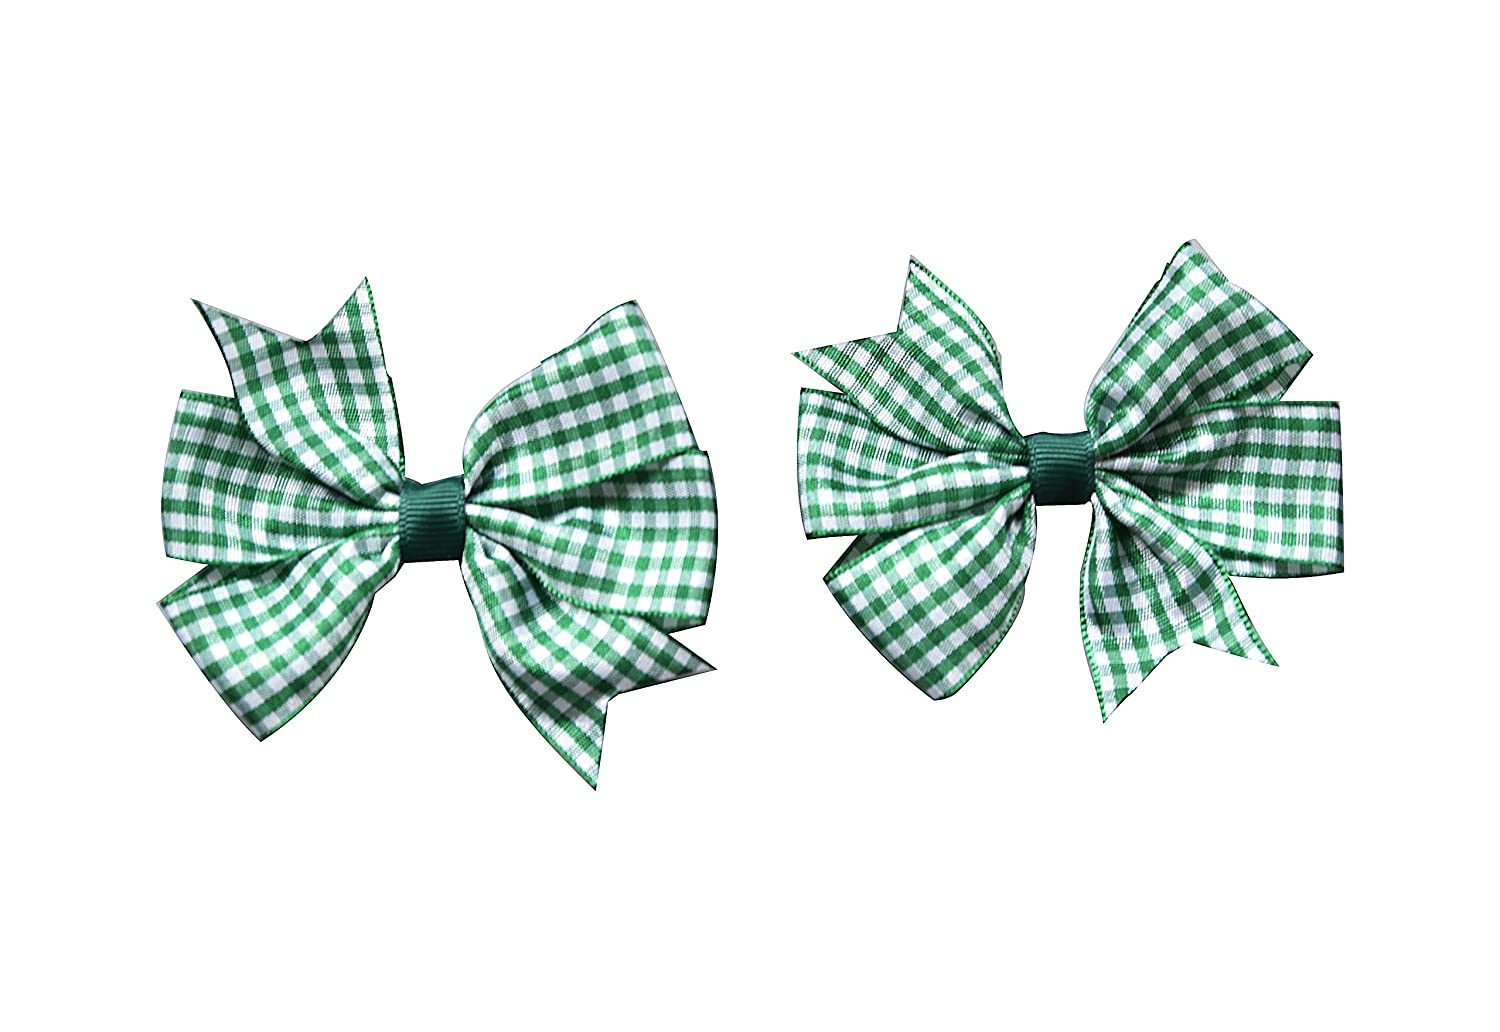 Bottle Green PrettyBoutique Girls Flat Fan Bow School Gingham Alice Band Headband